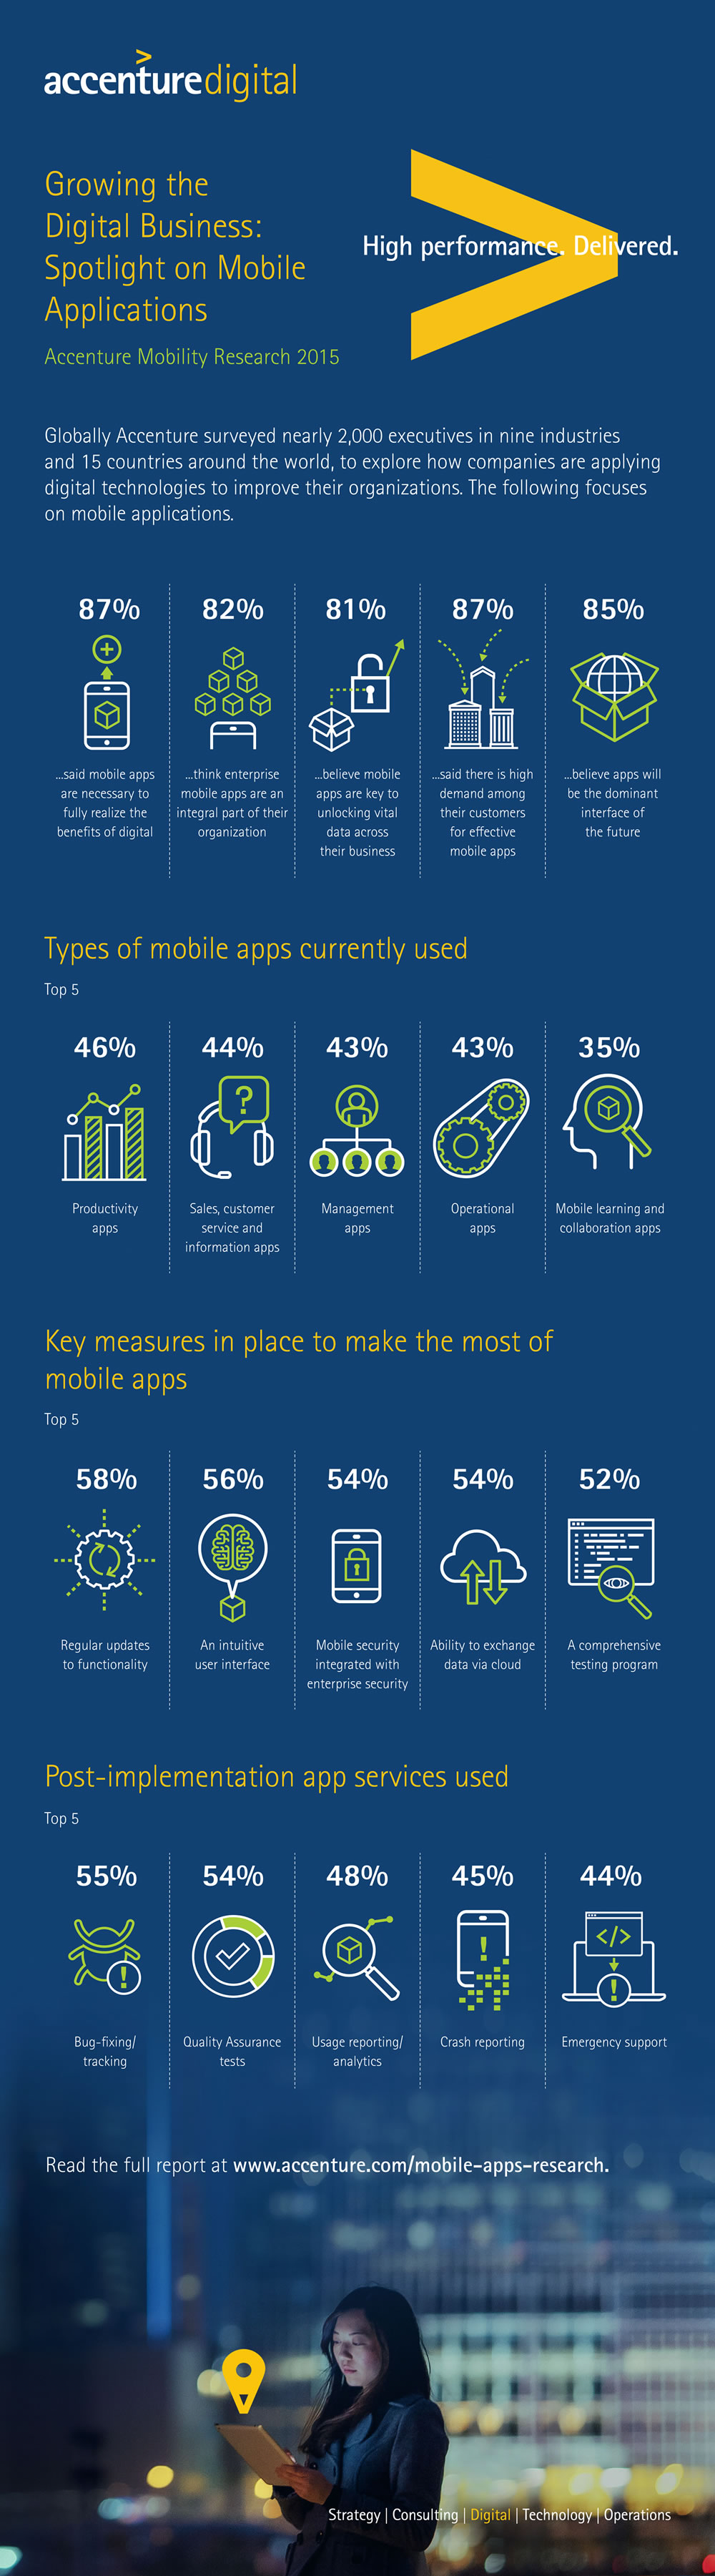 Accenture-Mobility-Research-Infographic-Mobile-App